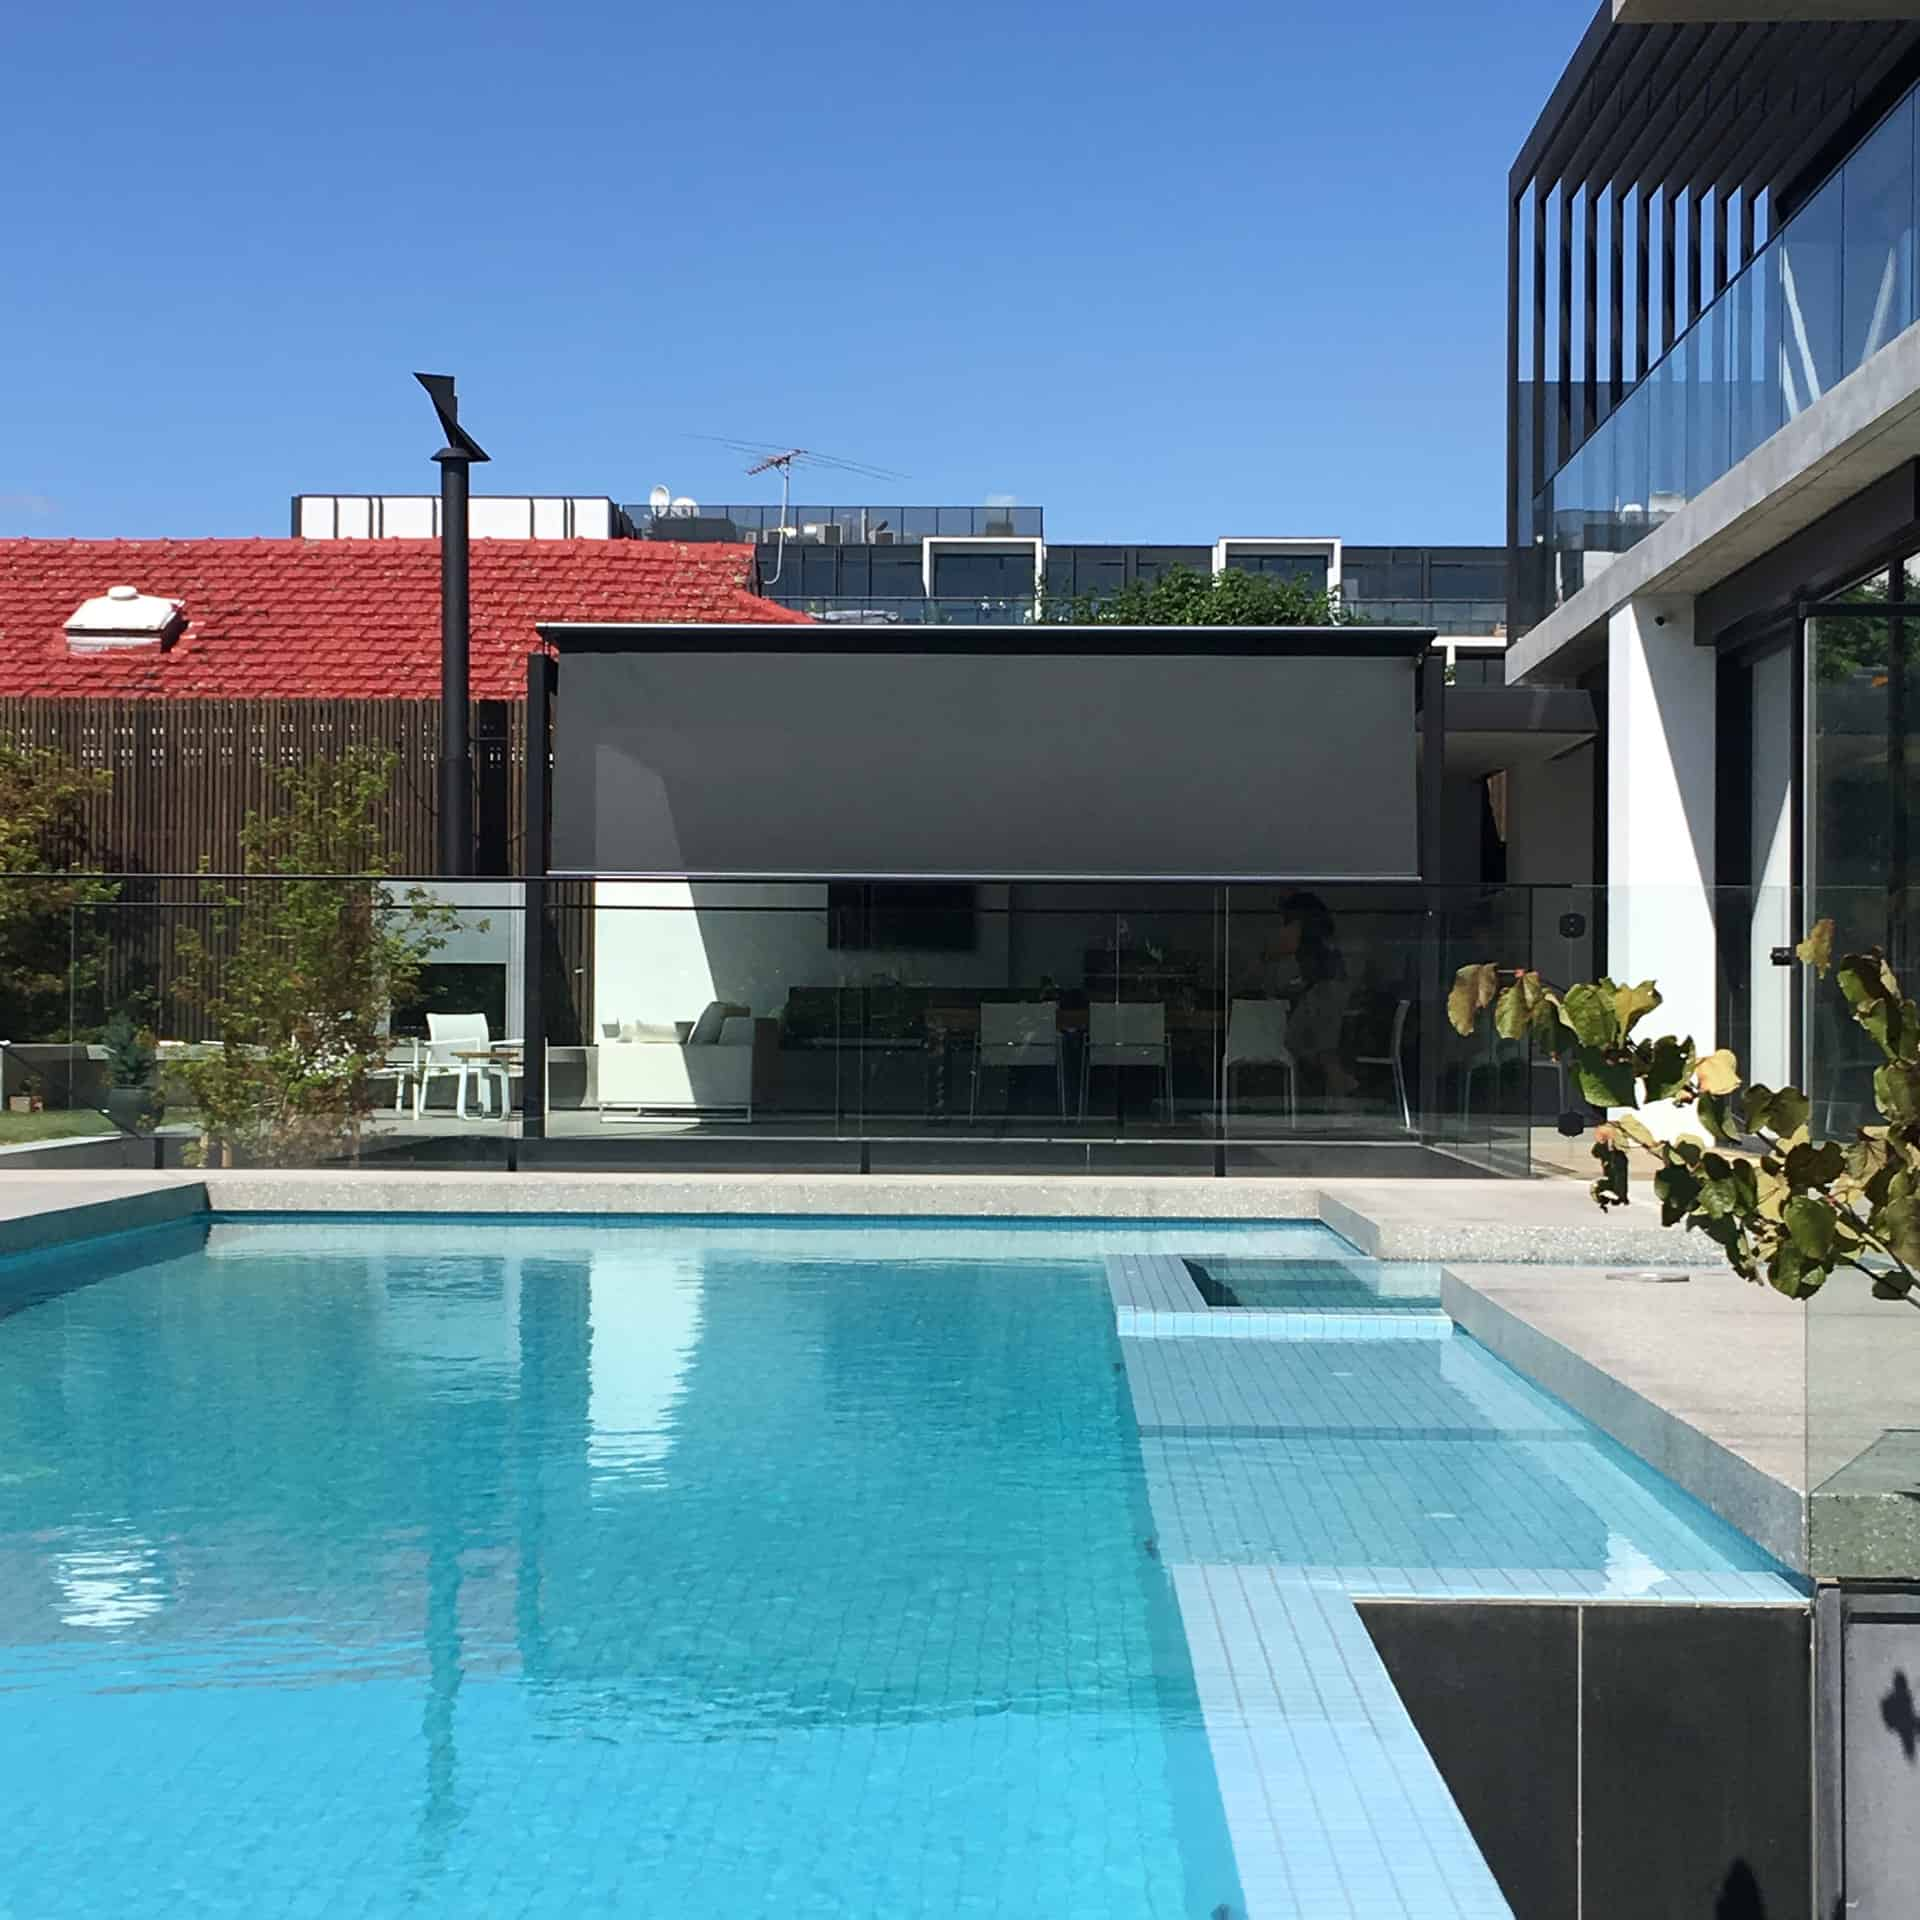 Markilux retractable roof awning over outdoor entertaining area of Melbourne home